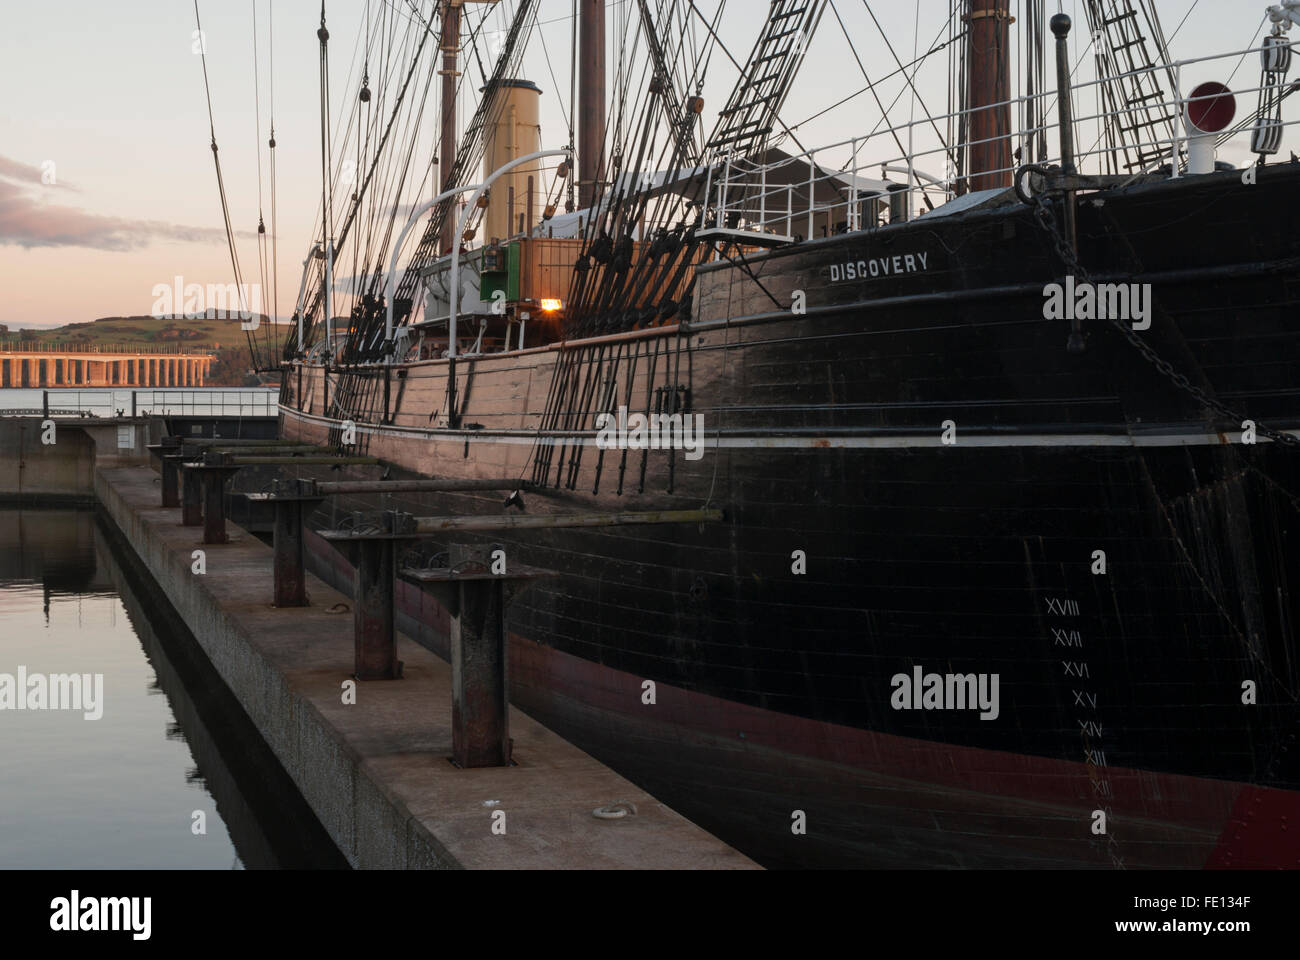 RRS Discovery, Discovery Point, Dundee, Scotland,UK. Stock Photo